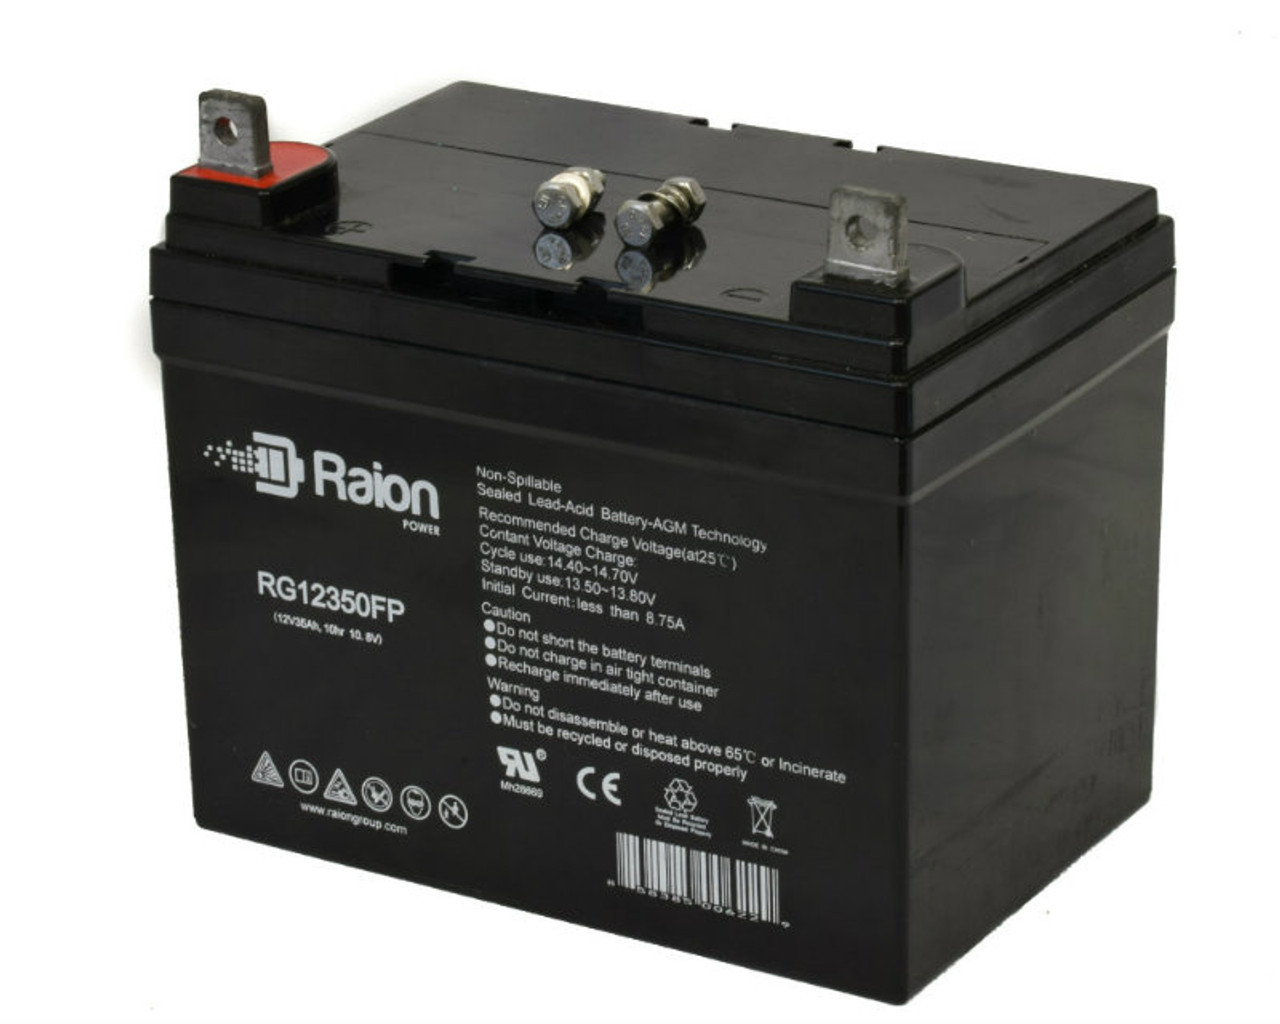 RG12350FP Sealed Lead Acid Battery Pack For Merits Travel-Ease P101-2S-S Mobility Scooter